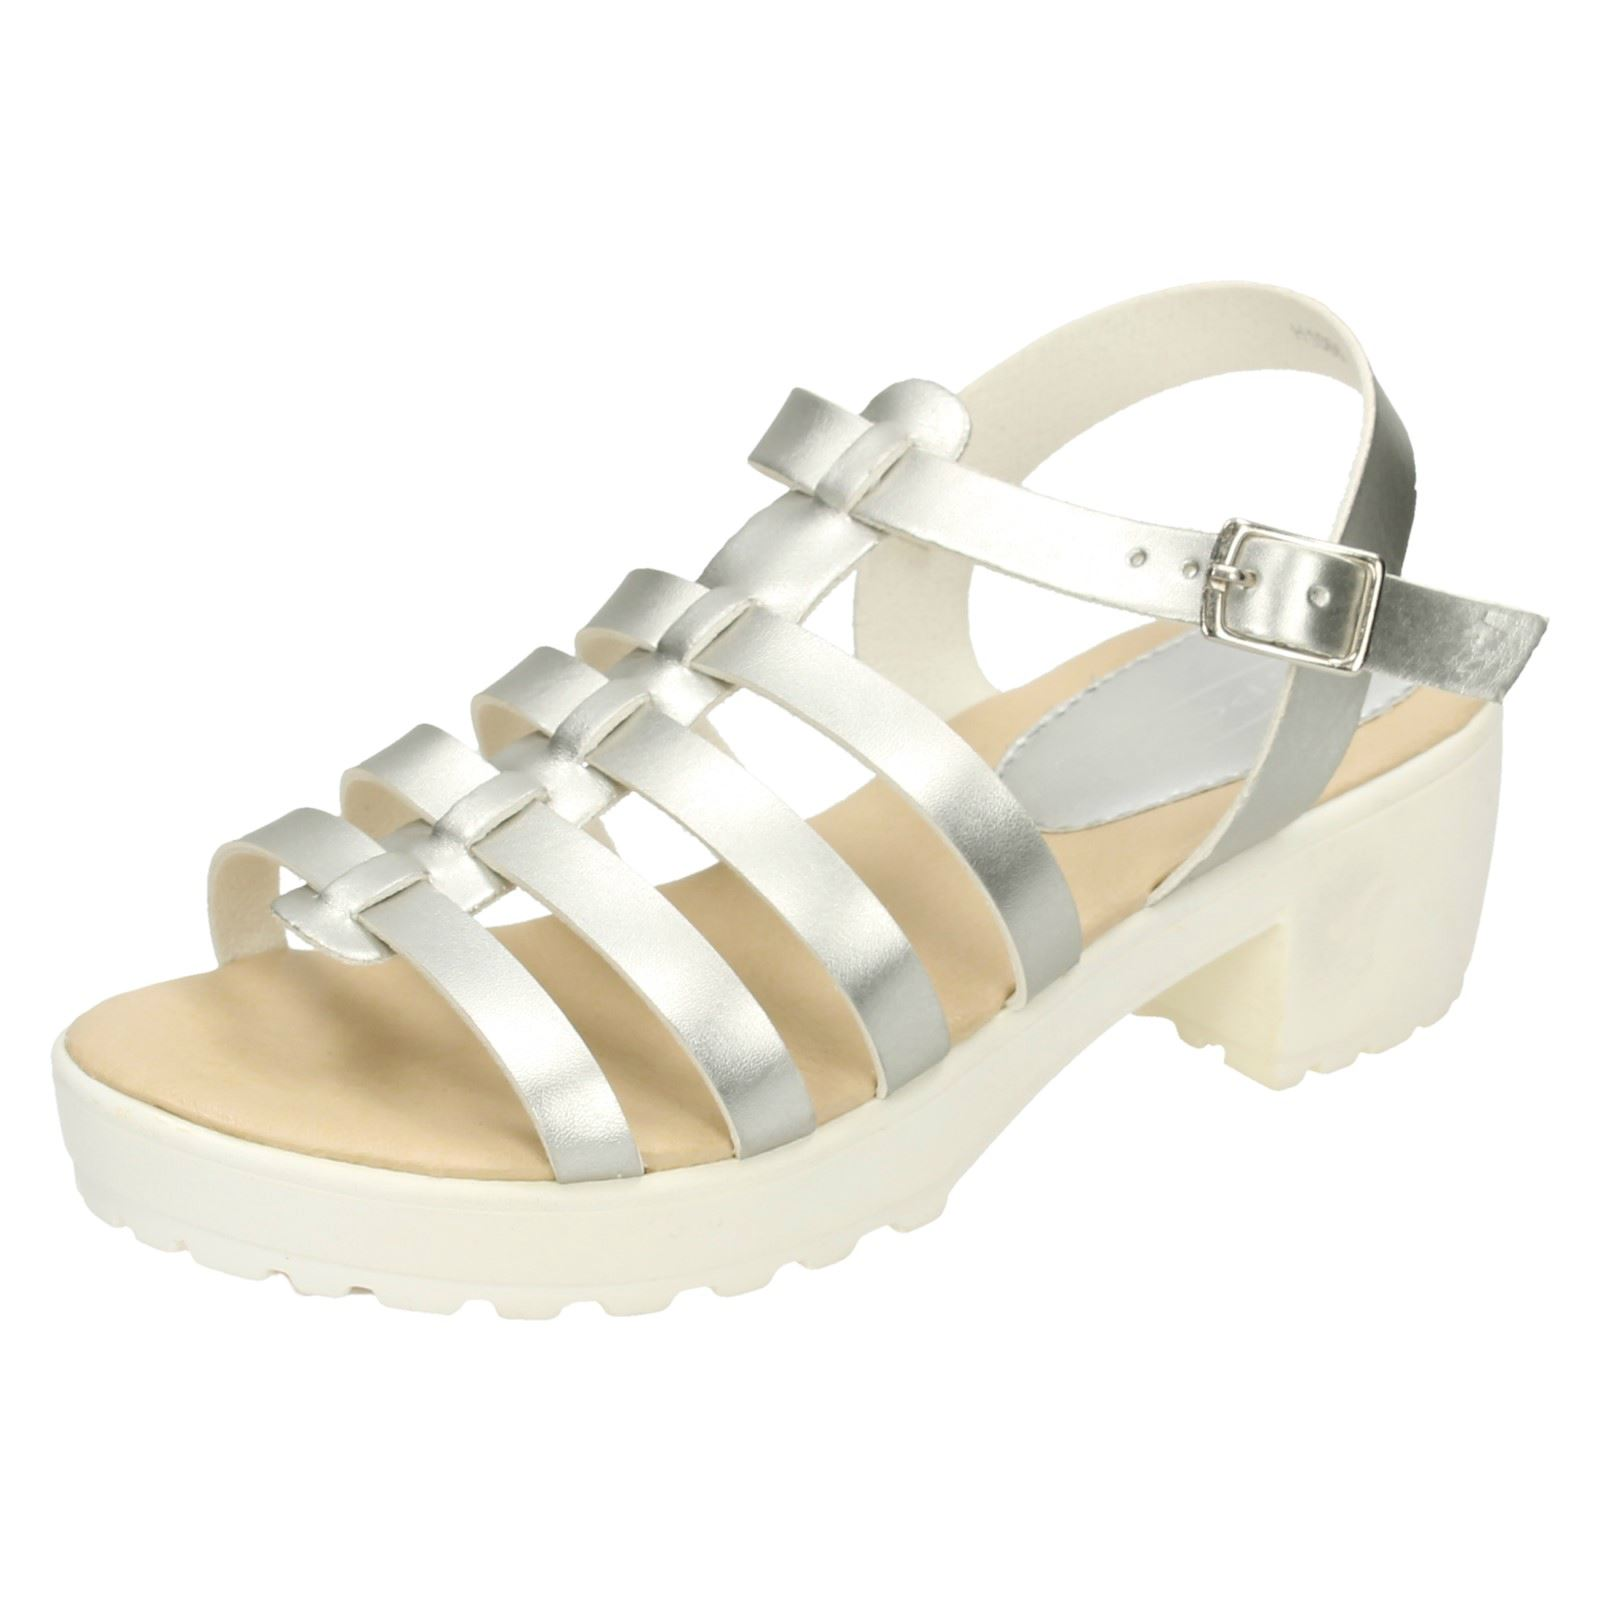 2d046e949 Sentinel KIDS GIRLS CHILDRENS SILVER STRAPPY SANDALS SUMMER HOLIDAY RETRO  SHOES UK 10-2